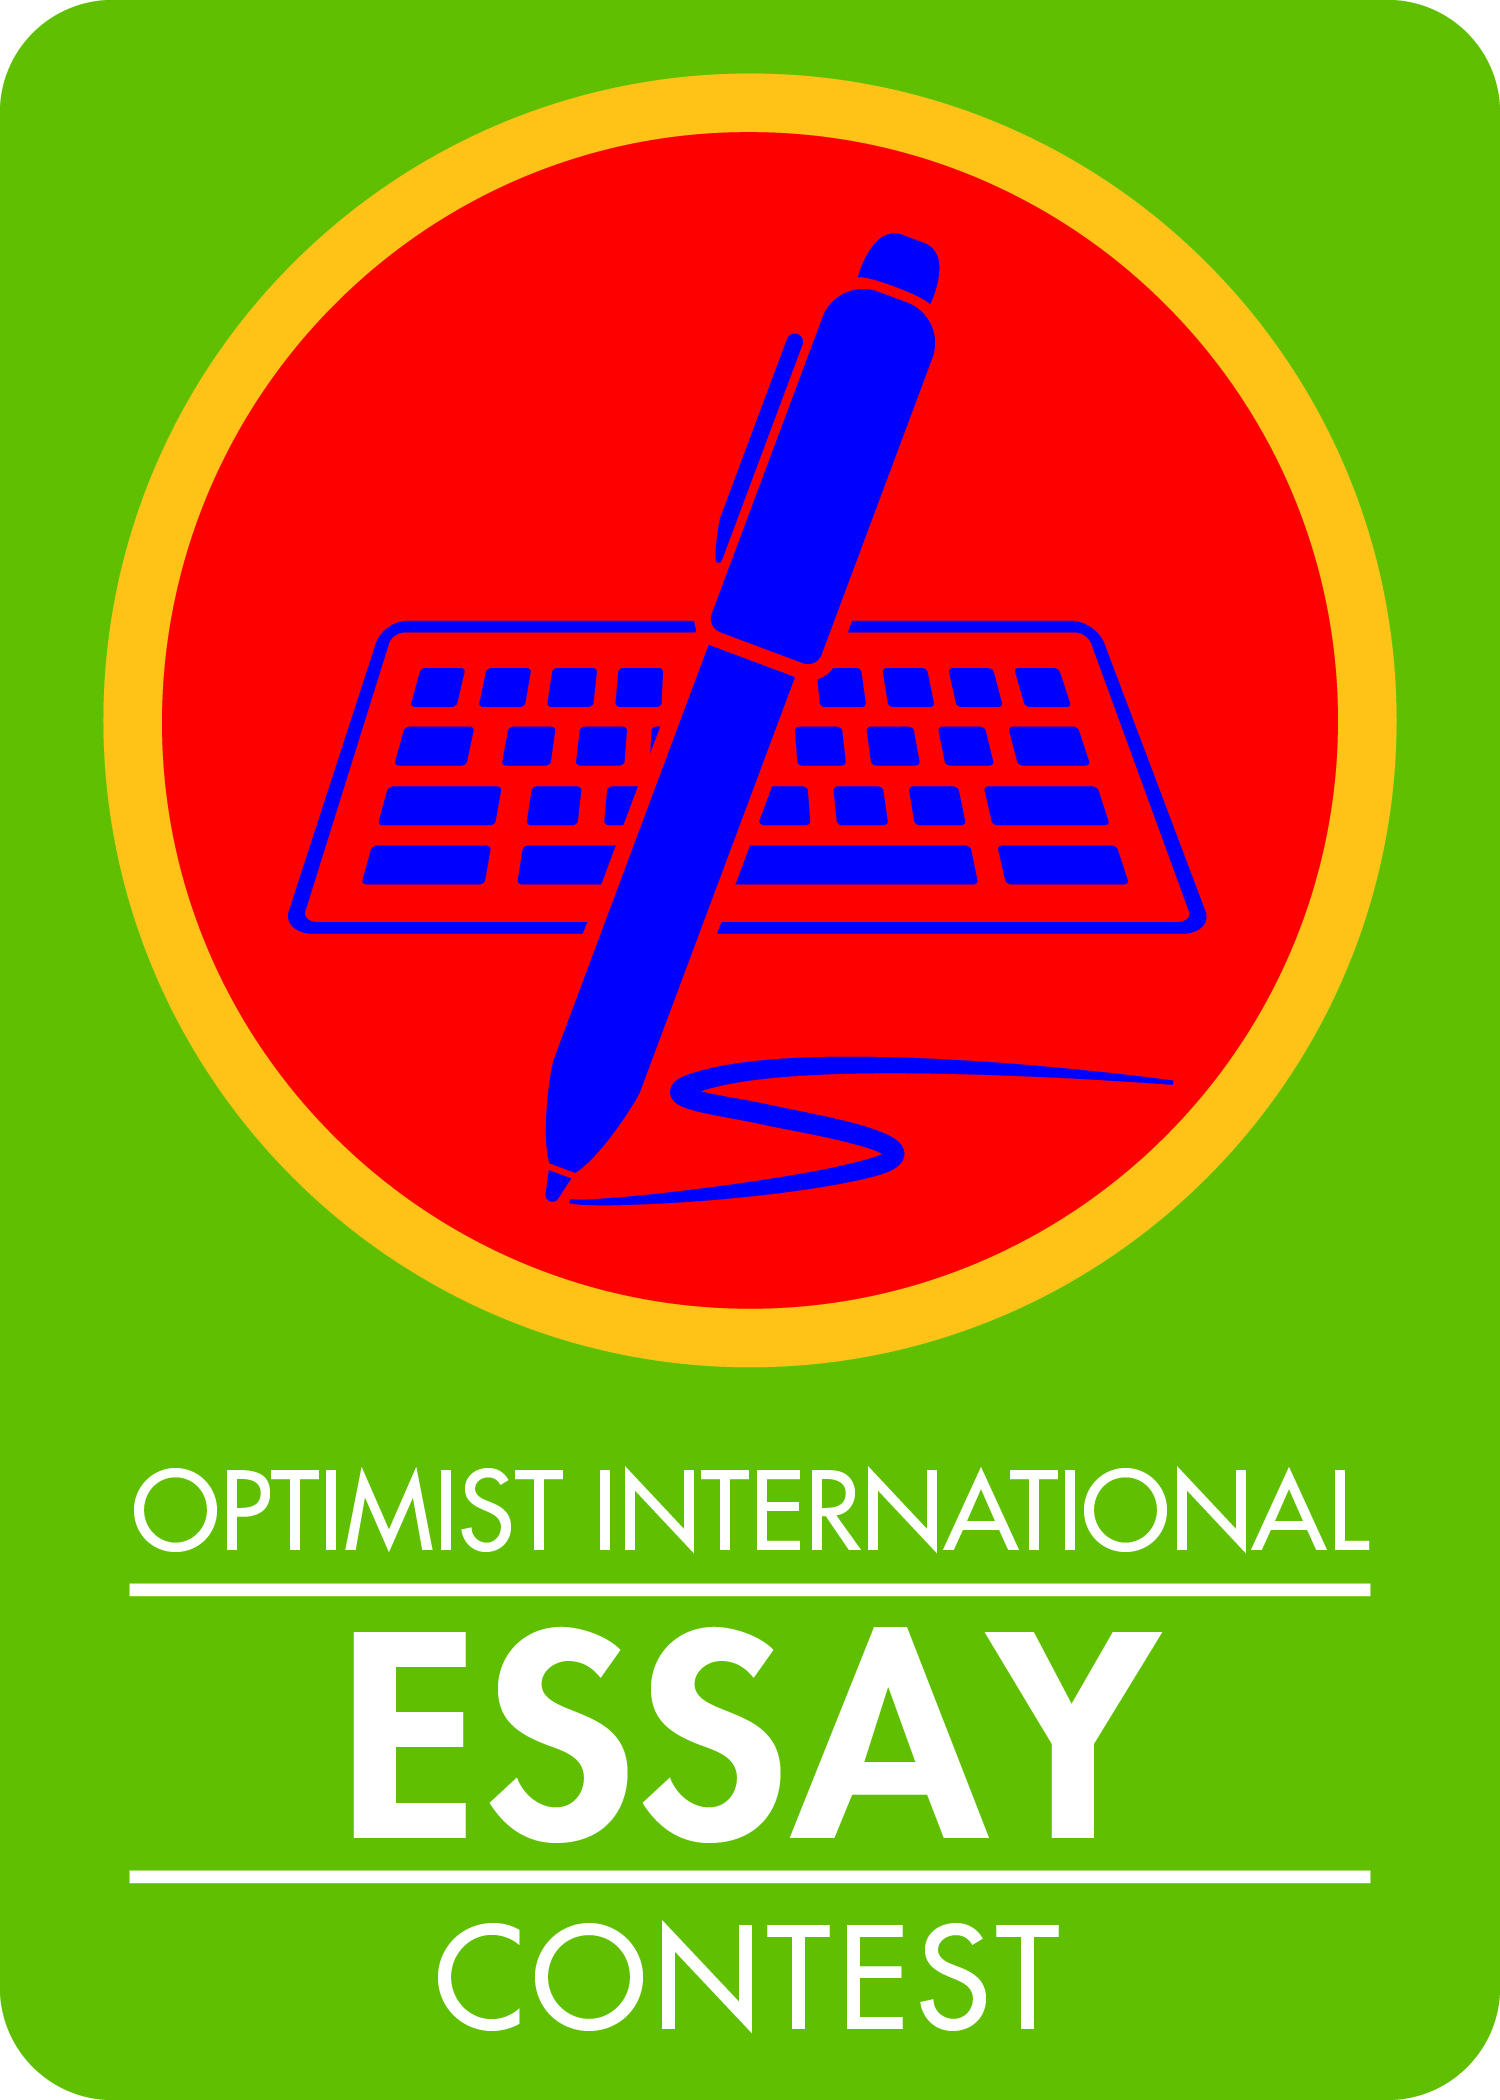 Essay-high-res.jpg (1500×2100)